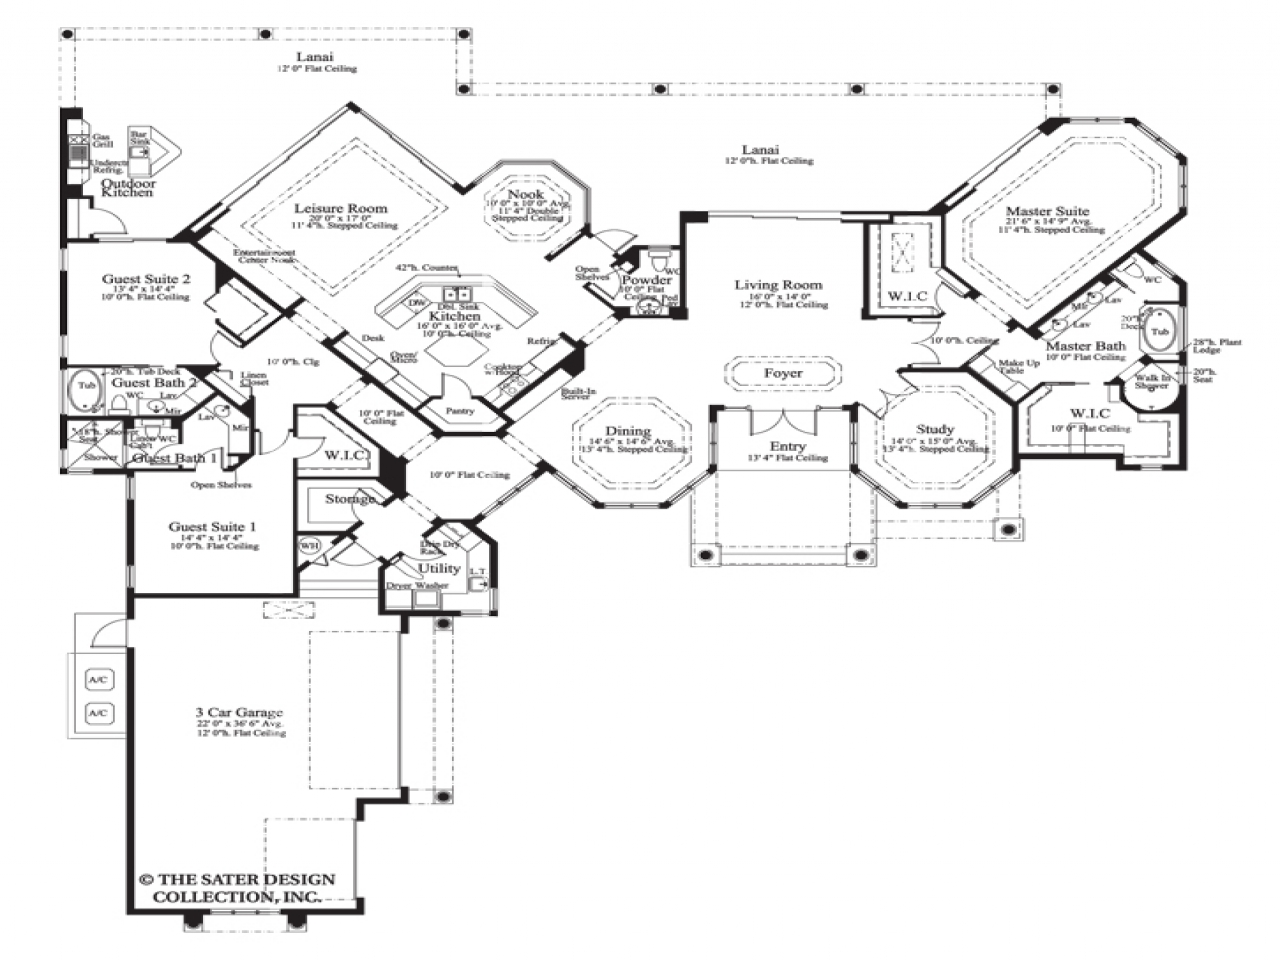 House plan the cardiff sater design collection luxury for Executive ranch floor plans